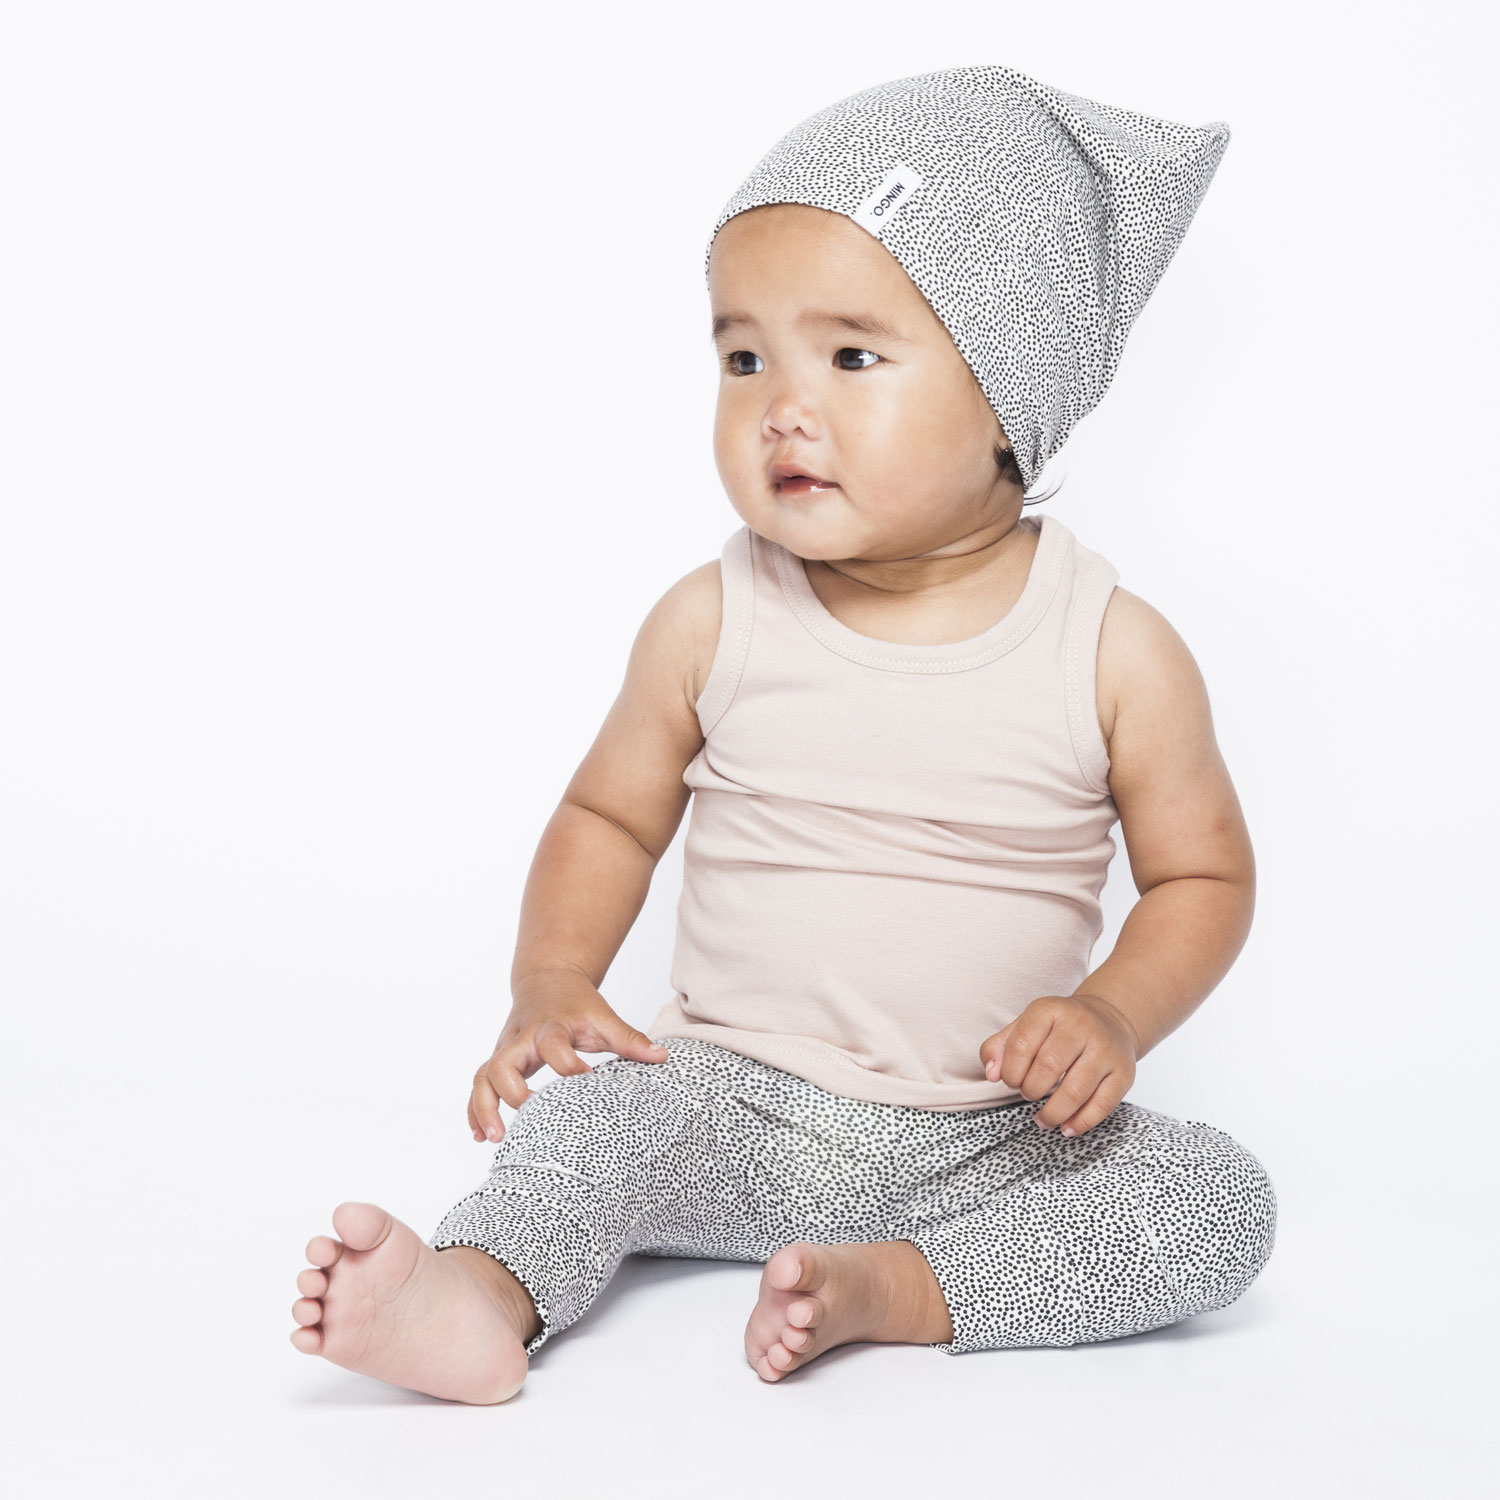 unisex baby clothes minimalist basic brands for the